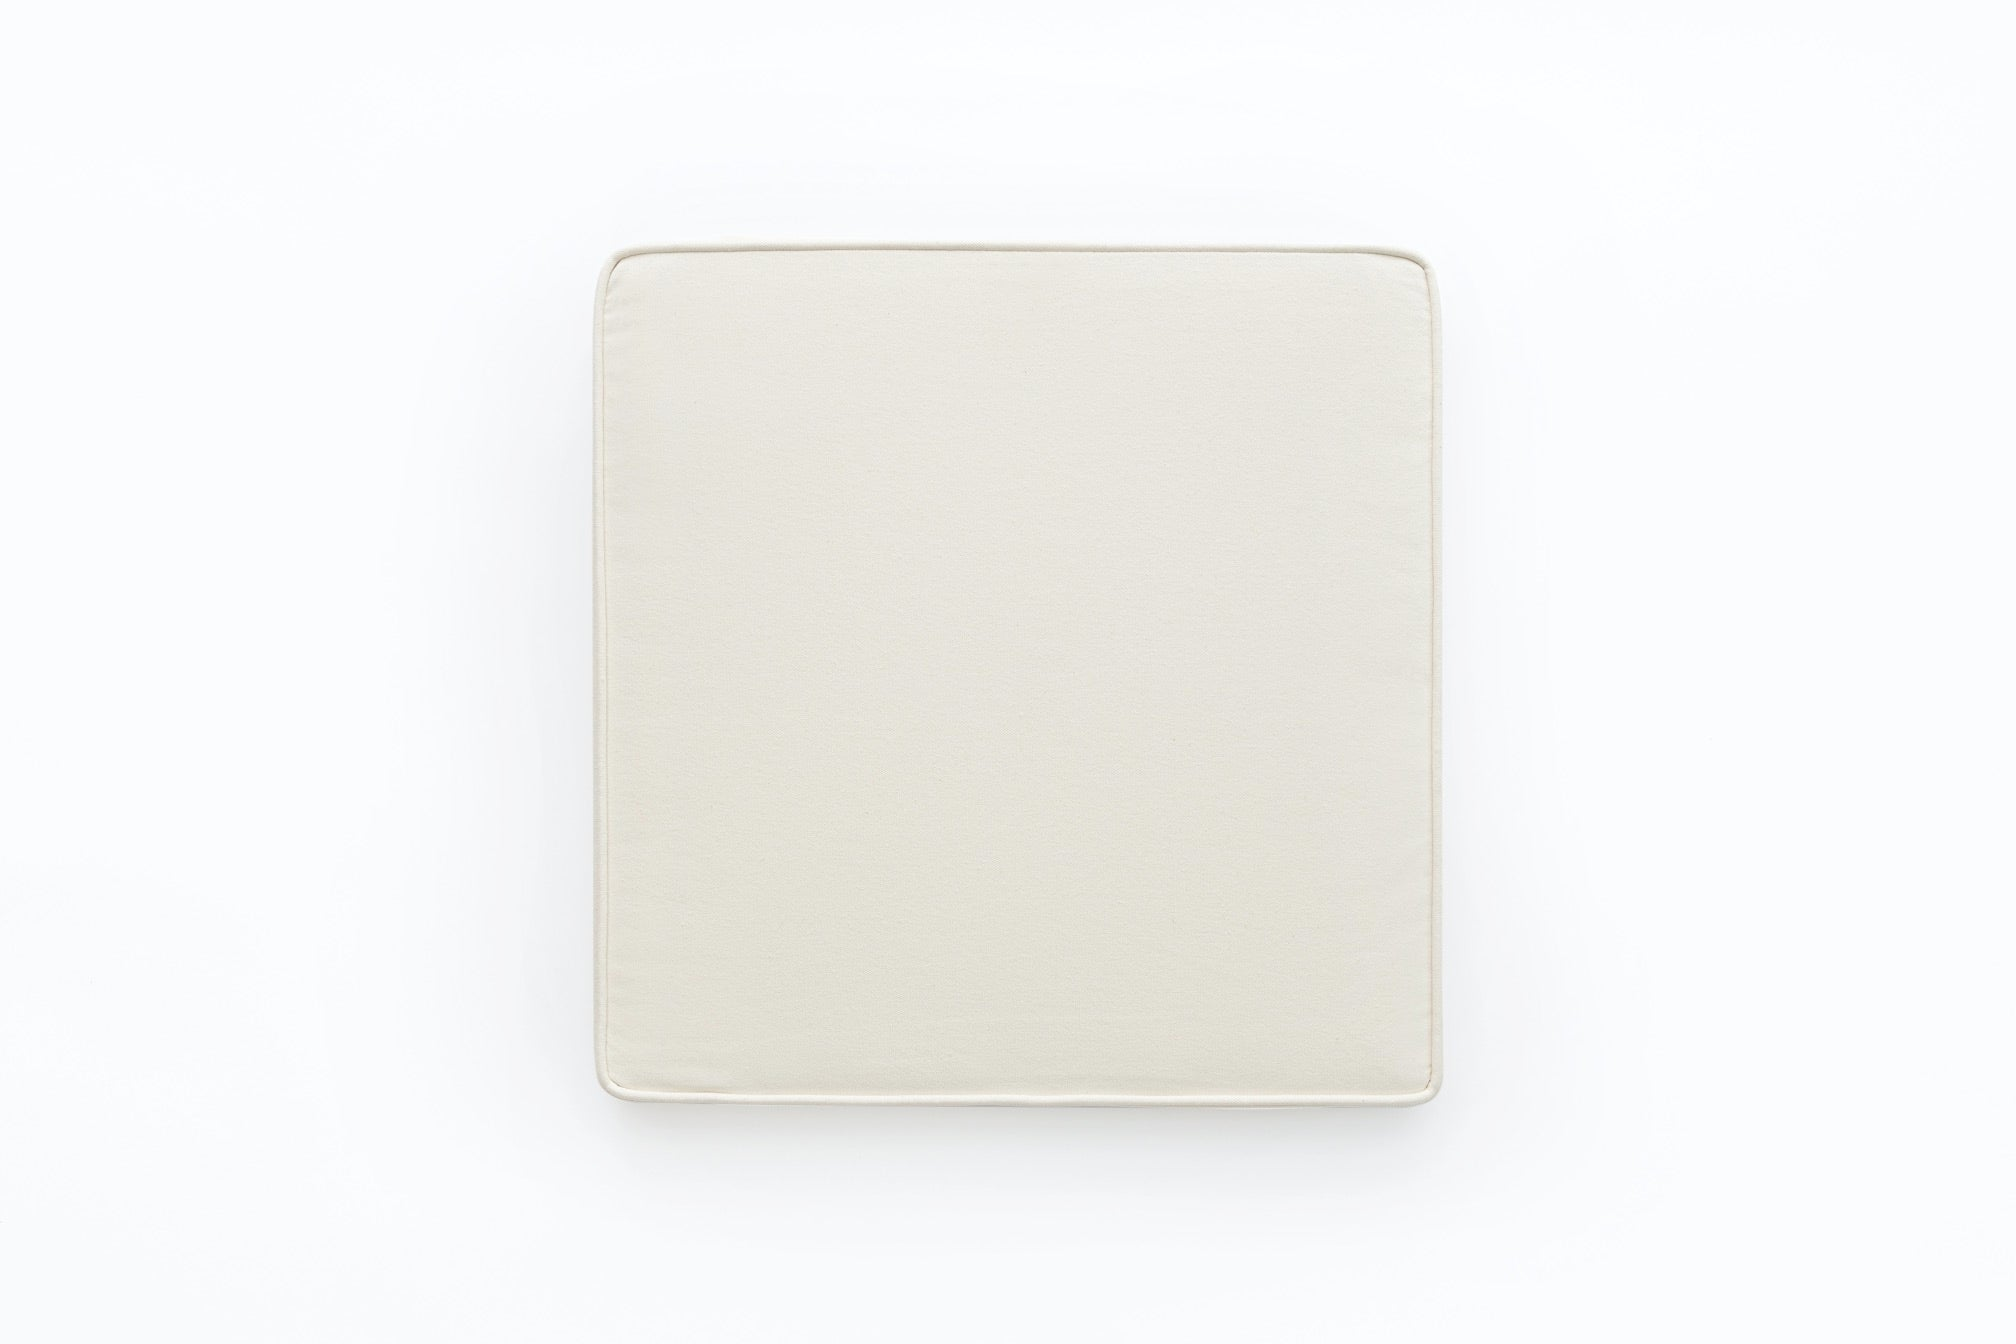 Seating pad - Beige cotton